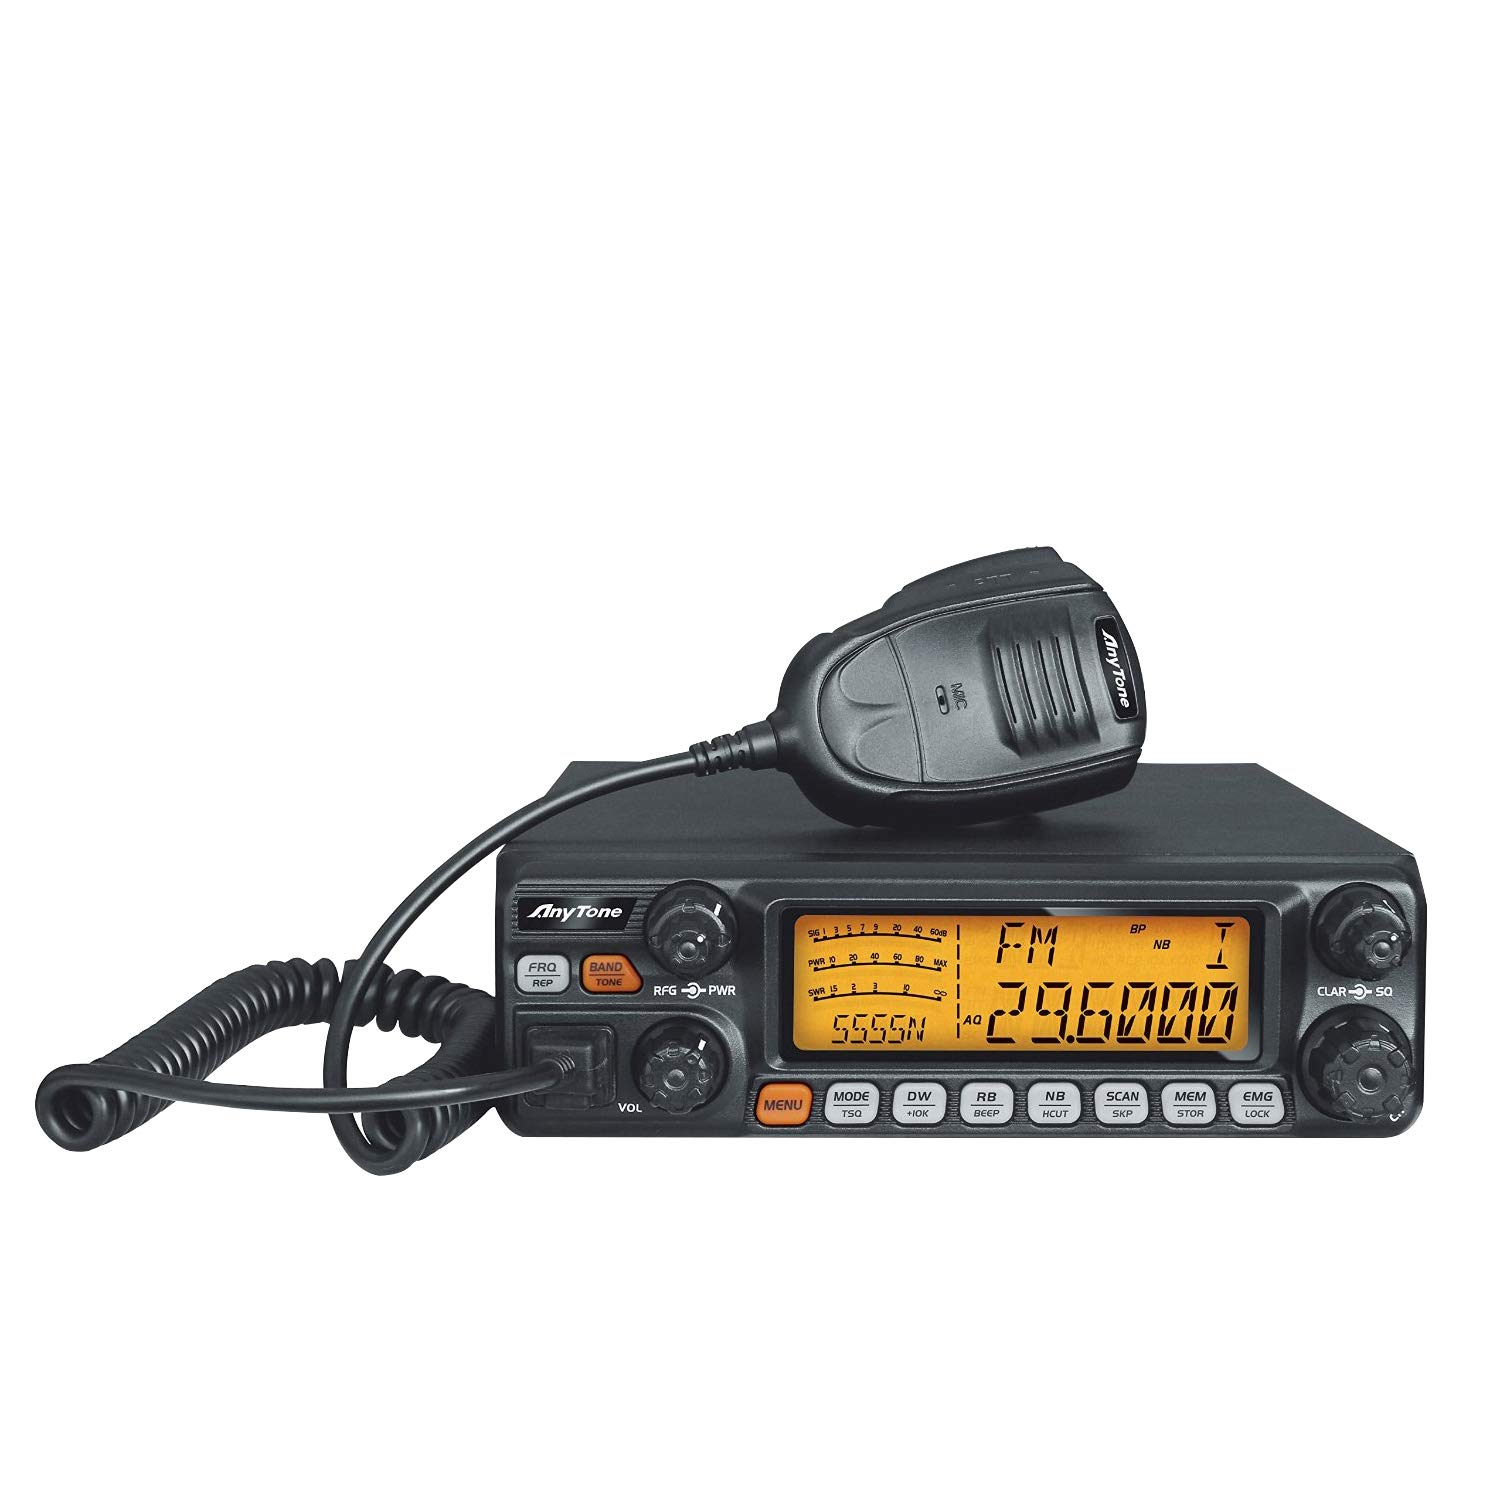 AnyTone AT-5555N 10 Meter Amateur Radio for Truck, with SSB/FM/AM/PA Mode,High Power Output 12W AM,30W FM,SSB 30W PEP by AnyTone